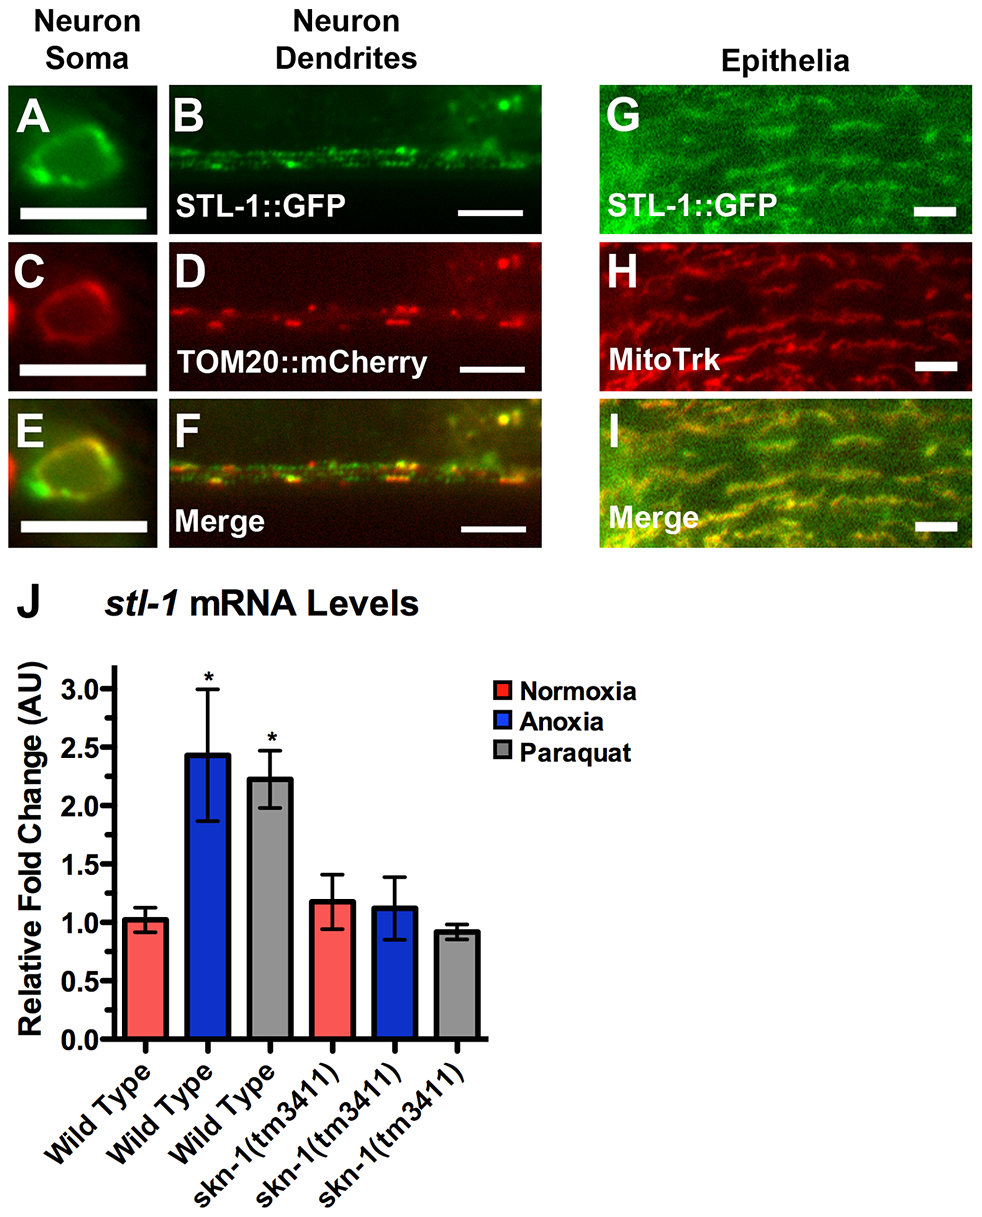 STL-1 resides at mitochondria and is regulated by SKN-1.